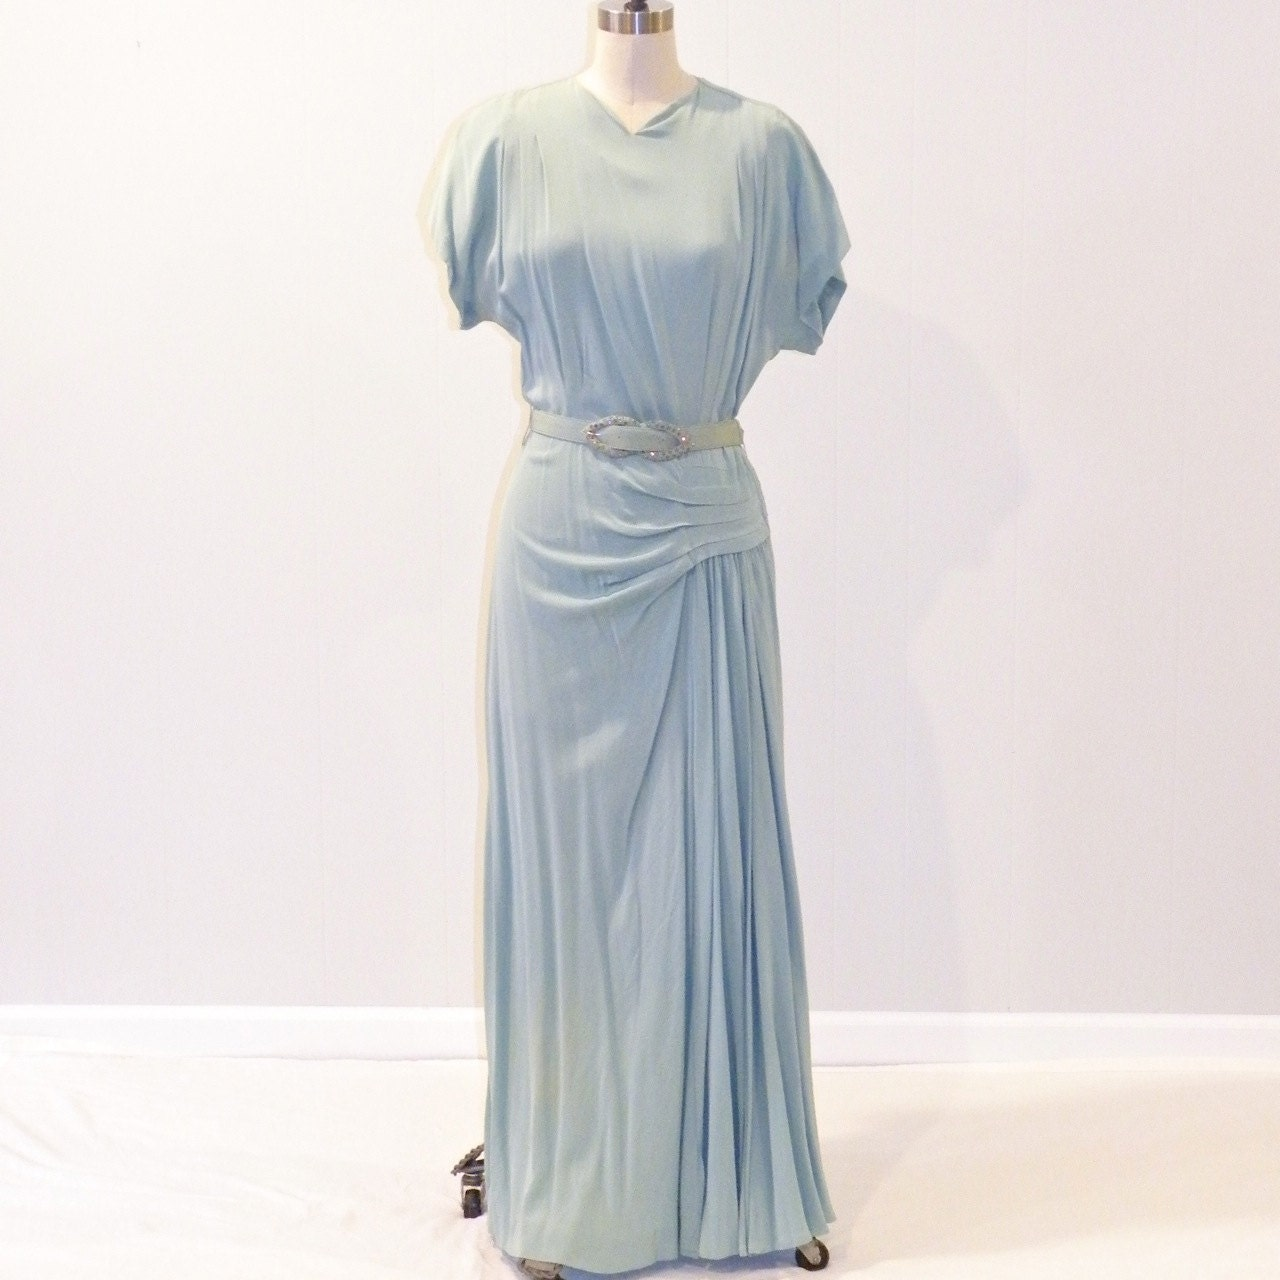 Glamour Gowns Tagged Size S The Deco Haus: HOLD For Marianne 1940s Dress 40s Seafoam Green Rayon Crepe